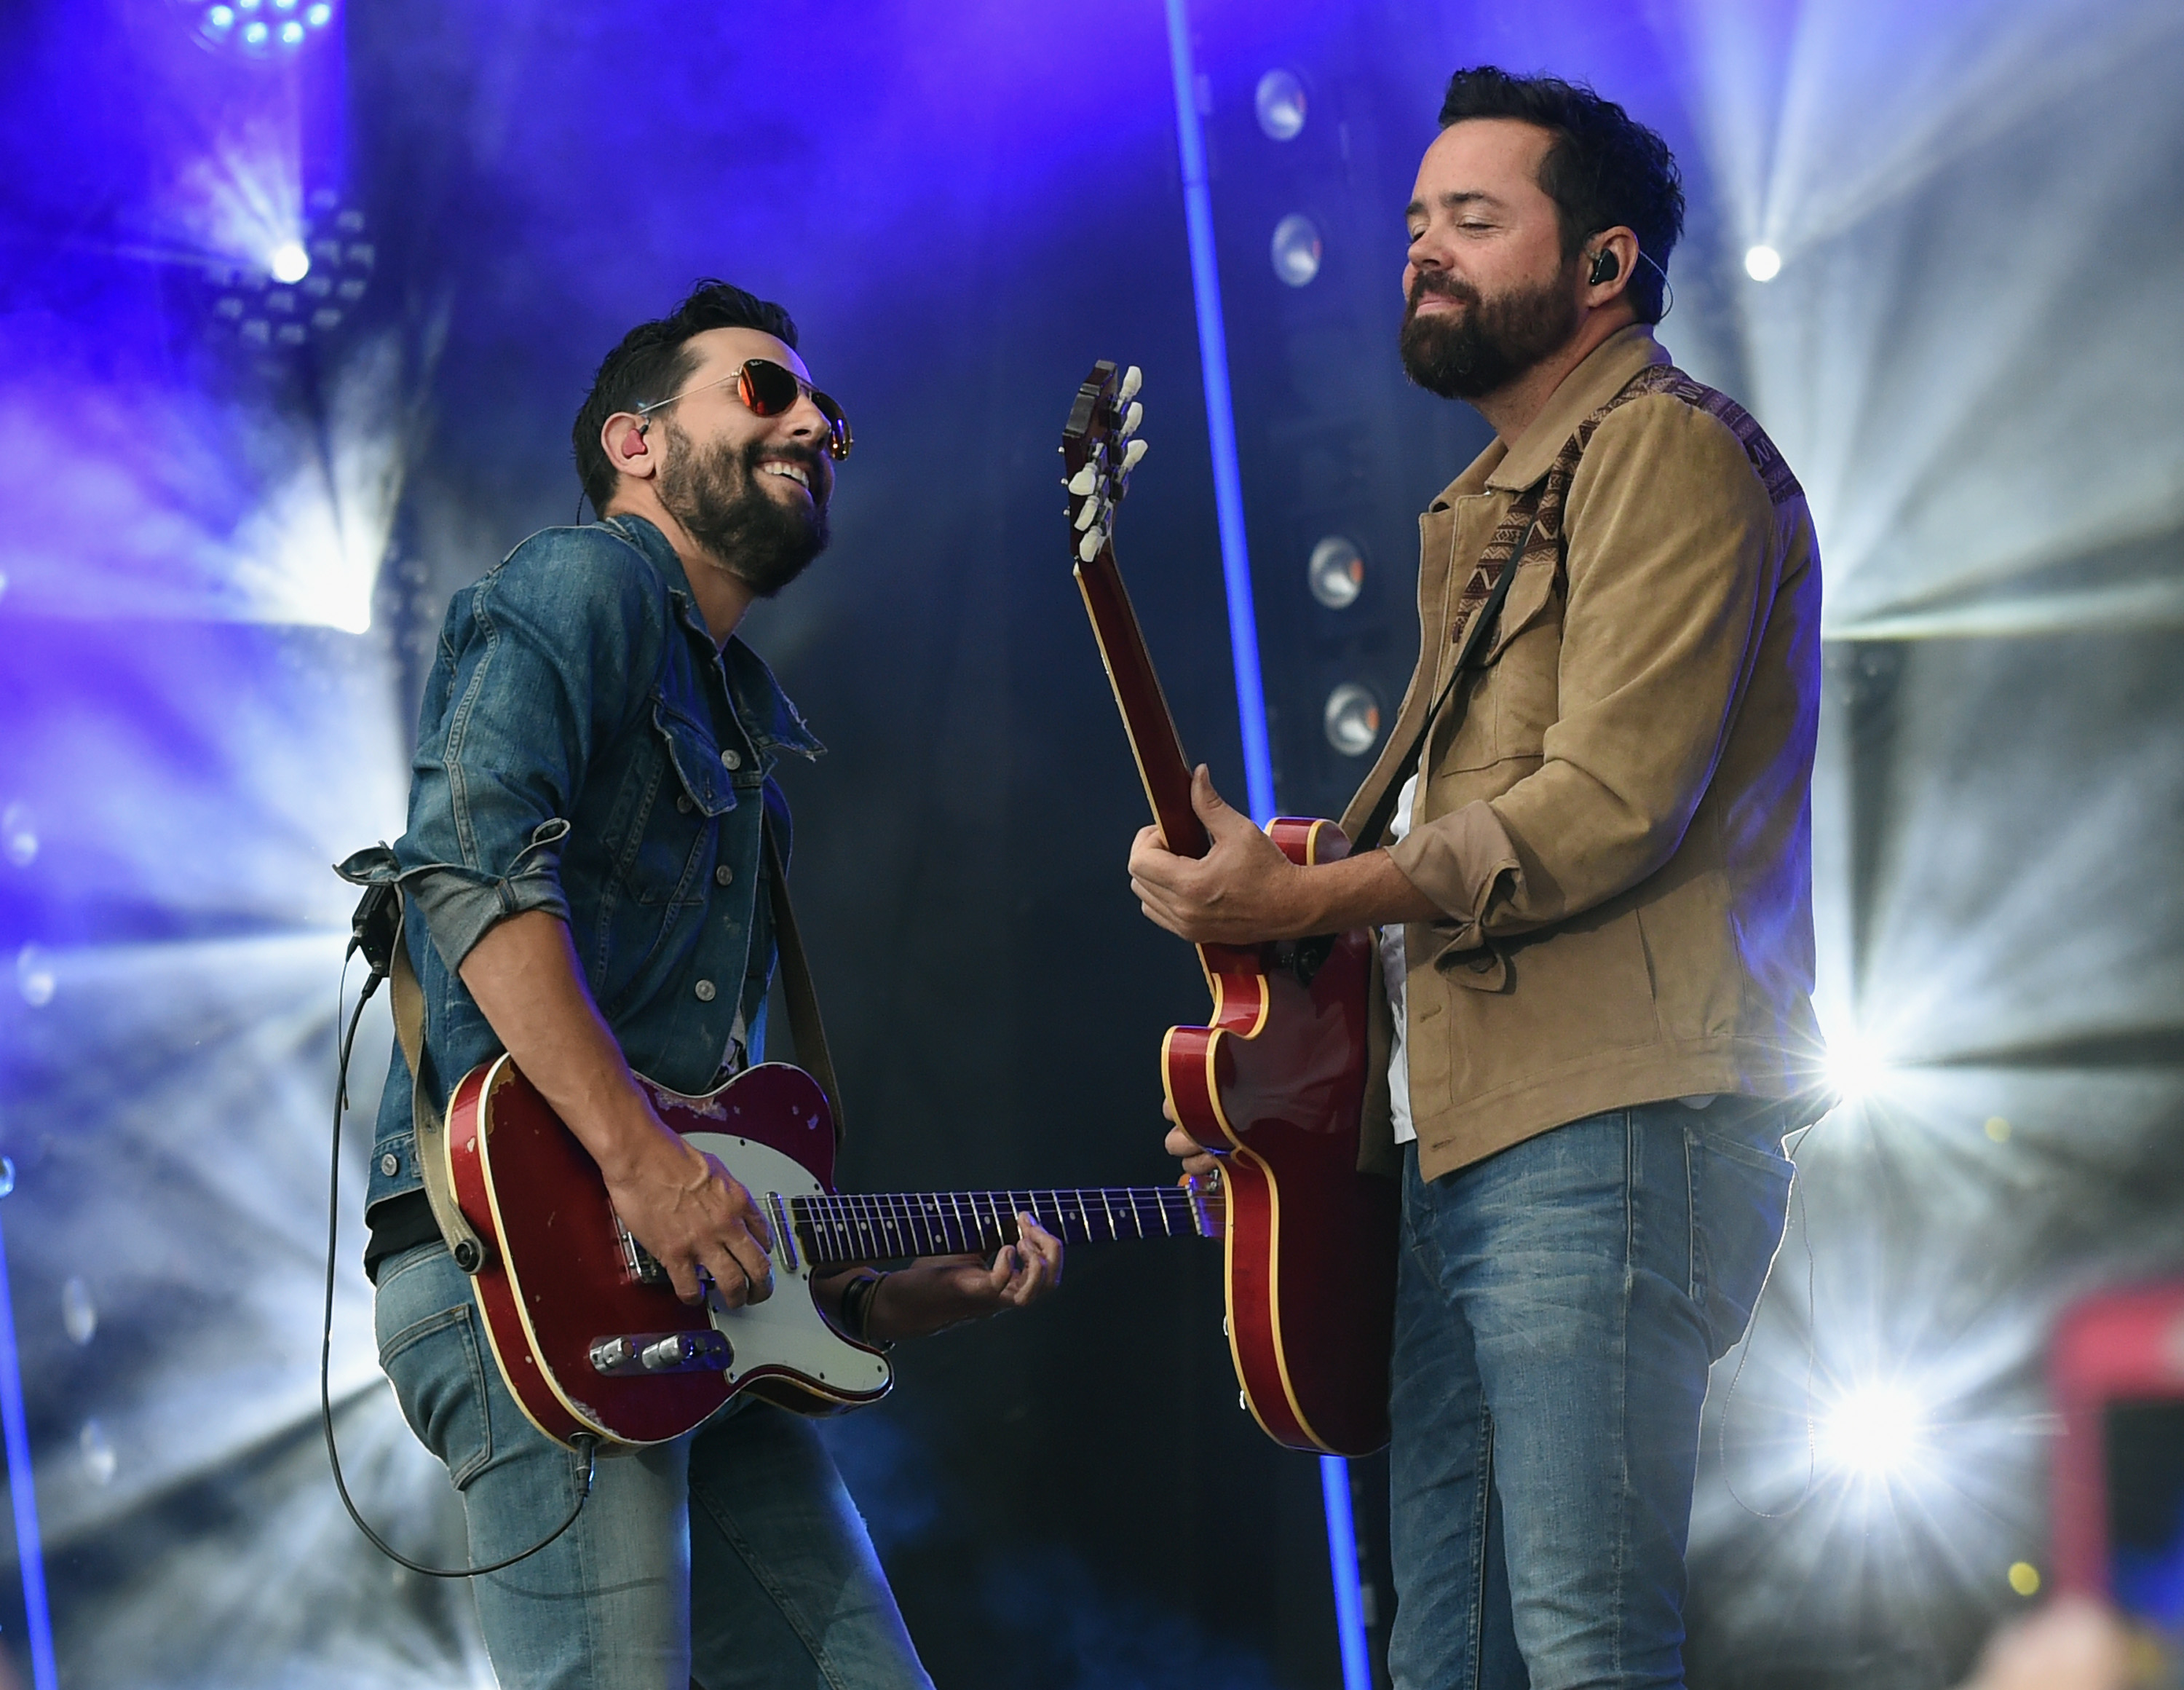 Old Dominion's 'Written in the Sand': Hear New Song